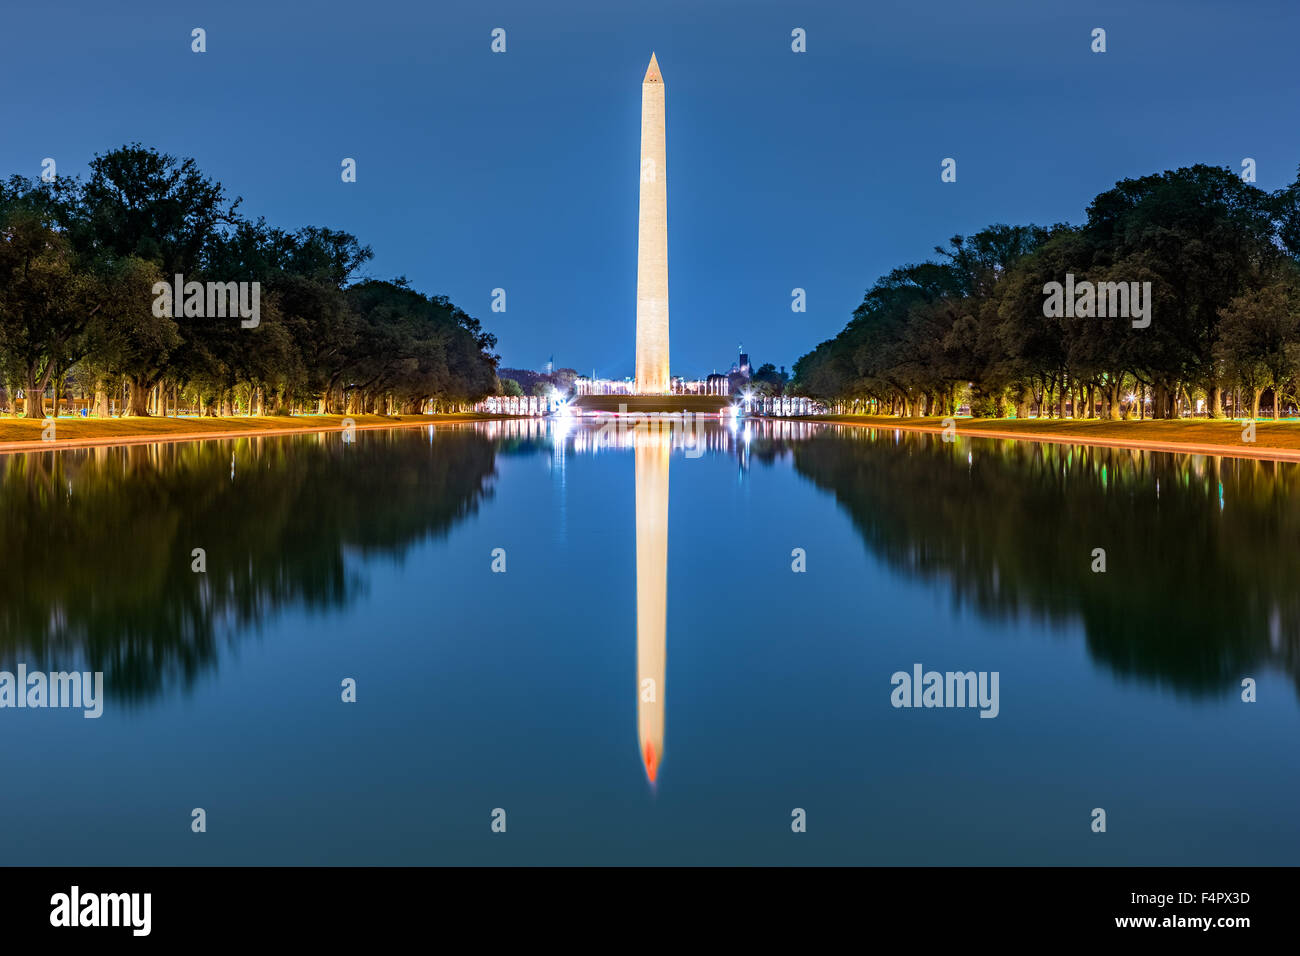 Washington monument, en miroir dans le miroir d'eau Photo Stock